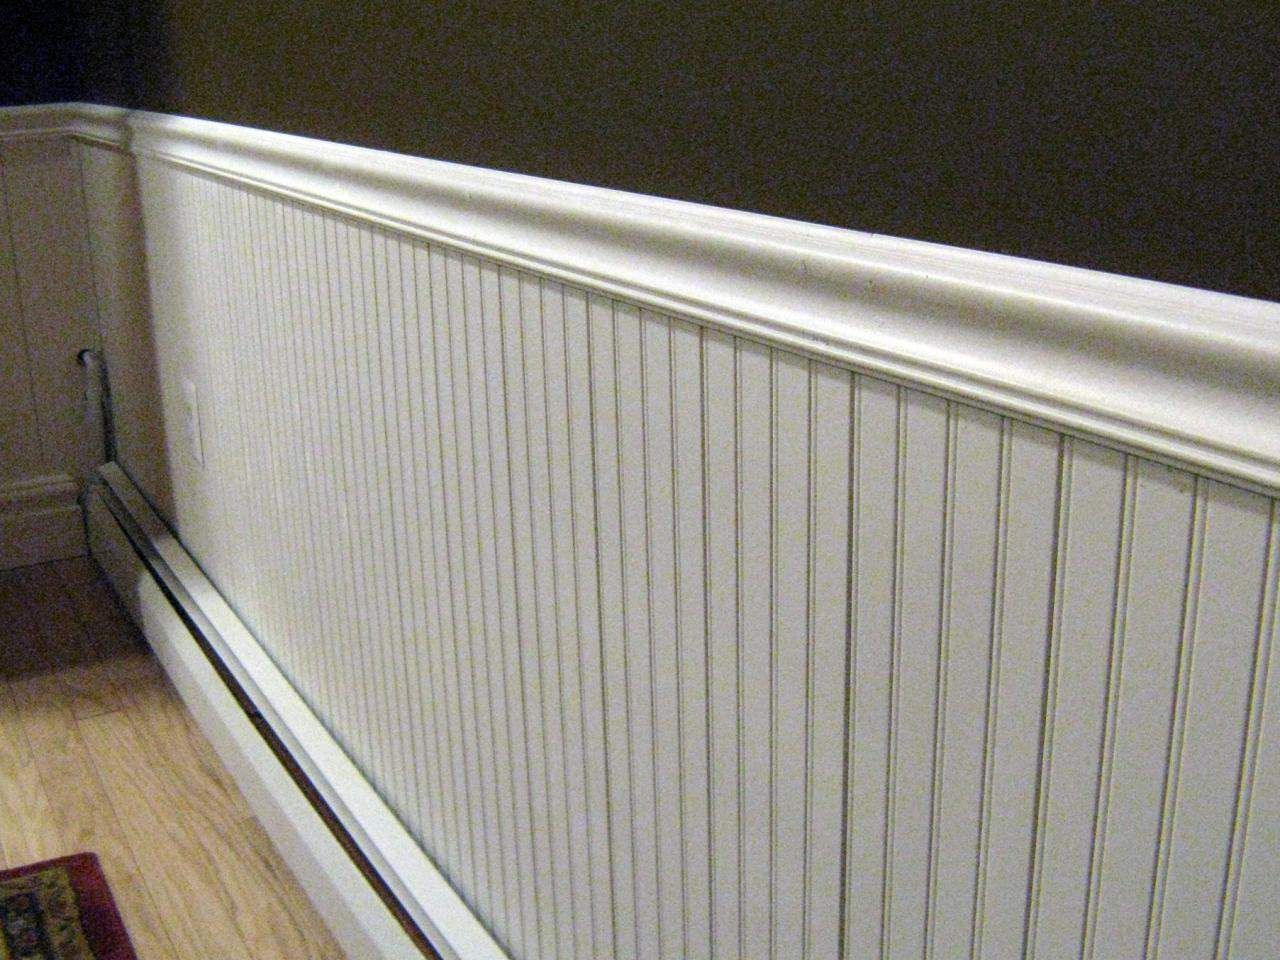 Chair Rail Cap Part - 37: Installing Wainscoting, Baseboards And Chair Rail : Decorating : Home  Garden Television